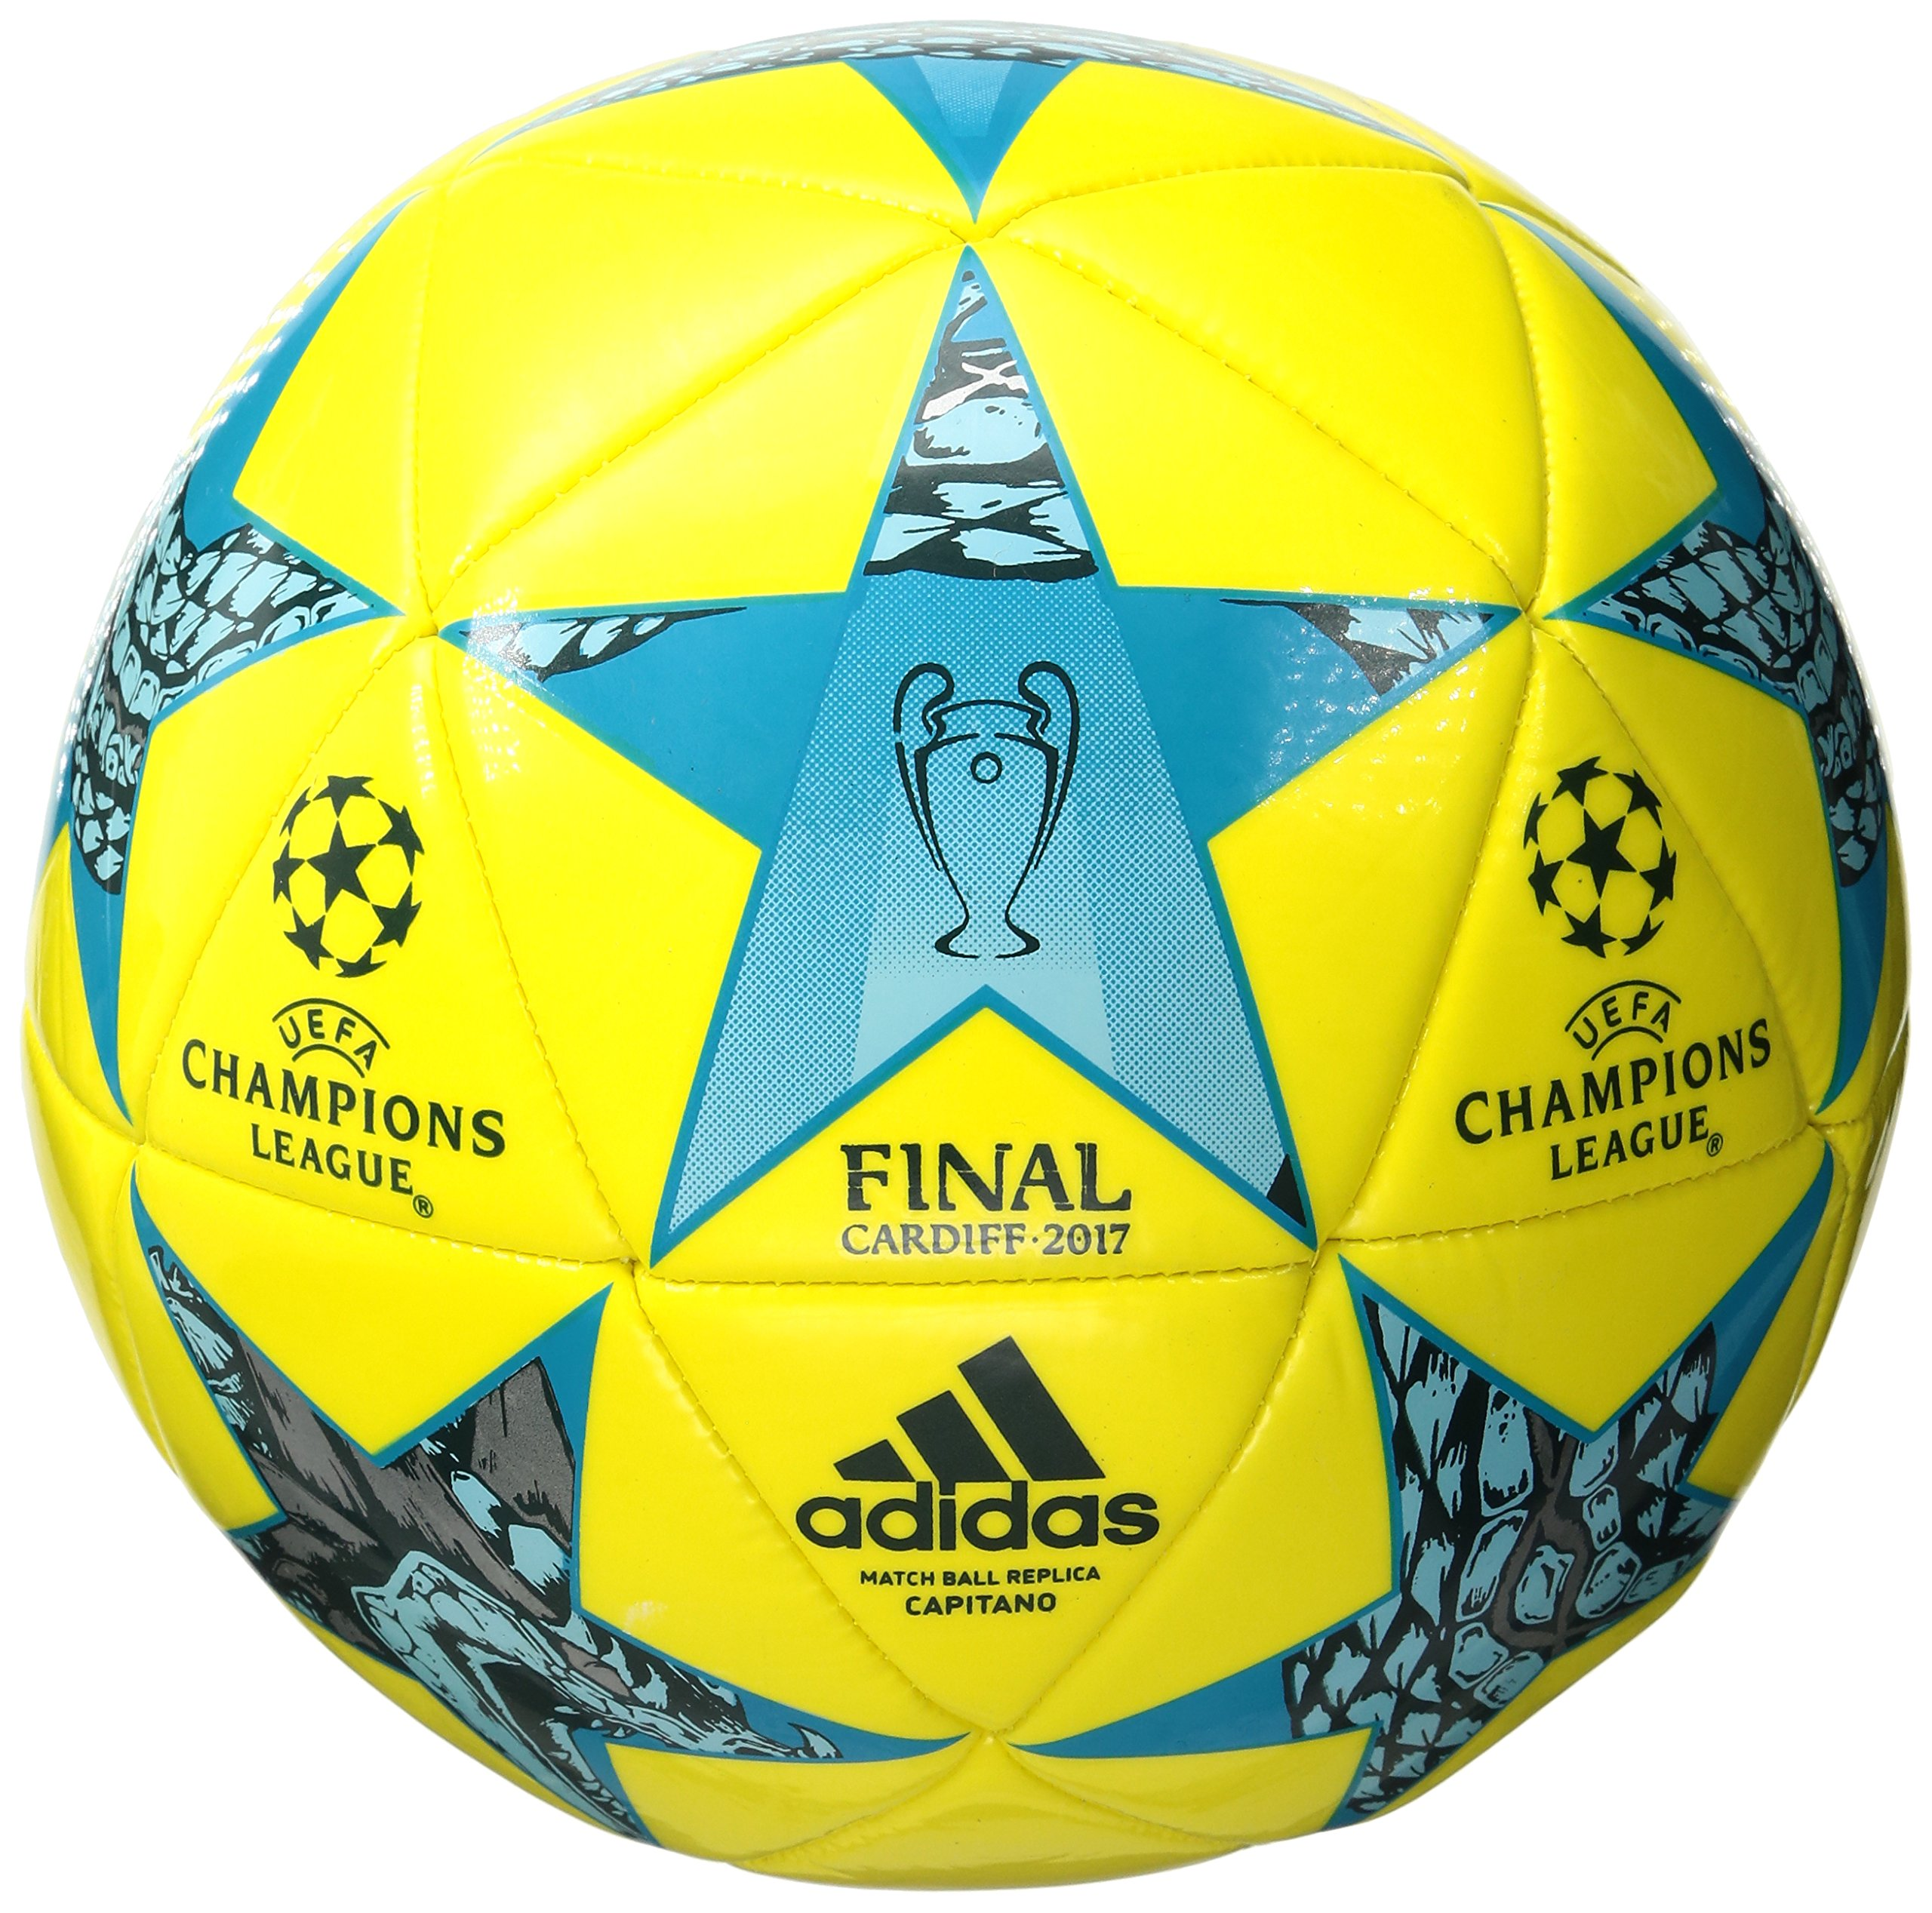 433671143cd62 adidas Performance Champions League Finale Cardiff Capitano Soccer Ball,  Bright Yellow/Clear Aqua/Energy Blue, Size 5